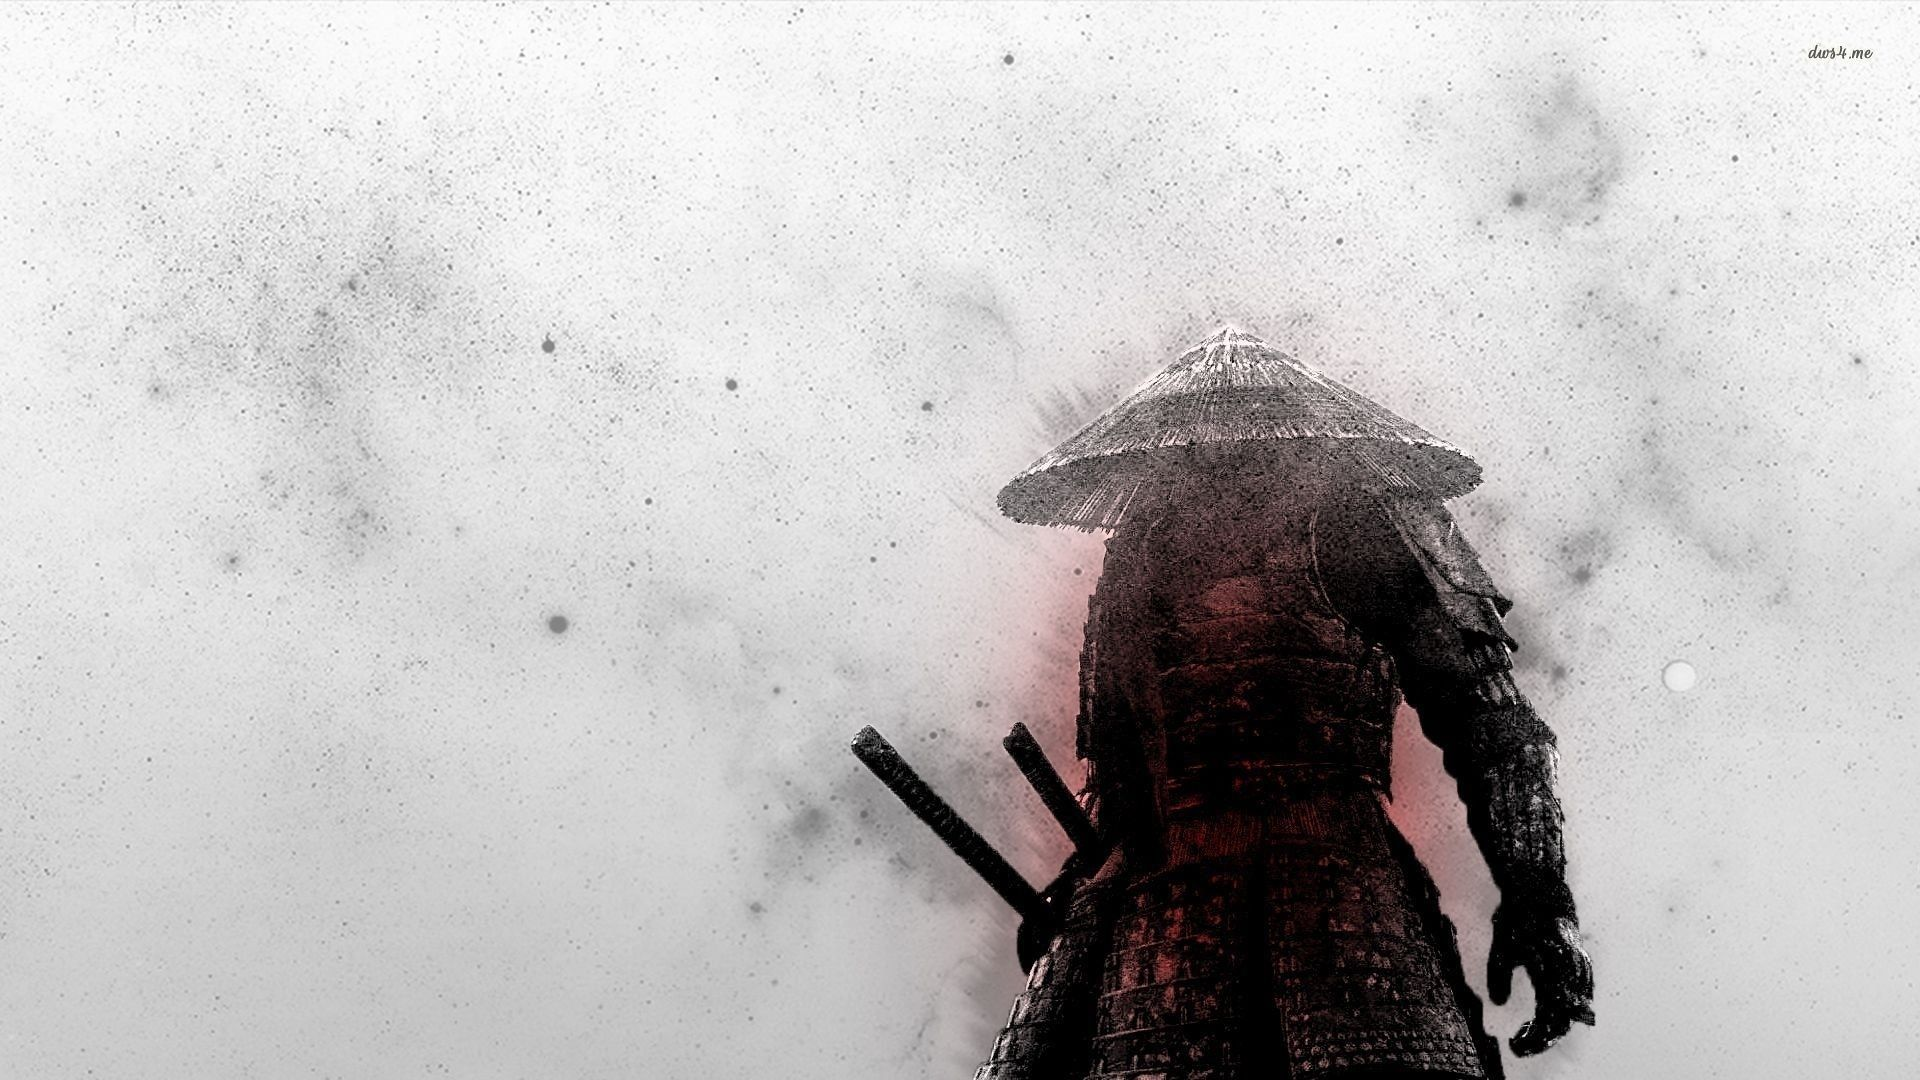 10 New Samurai Warrior Wallpaper Hd Full Hd 19201080 For Pc